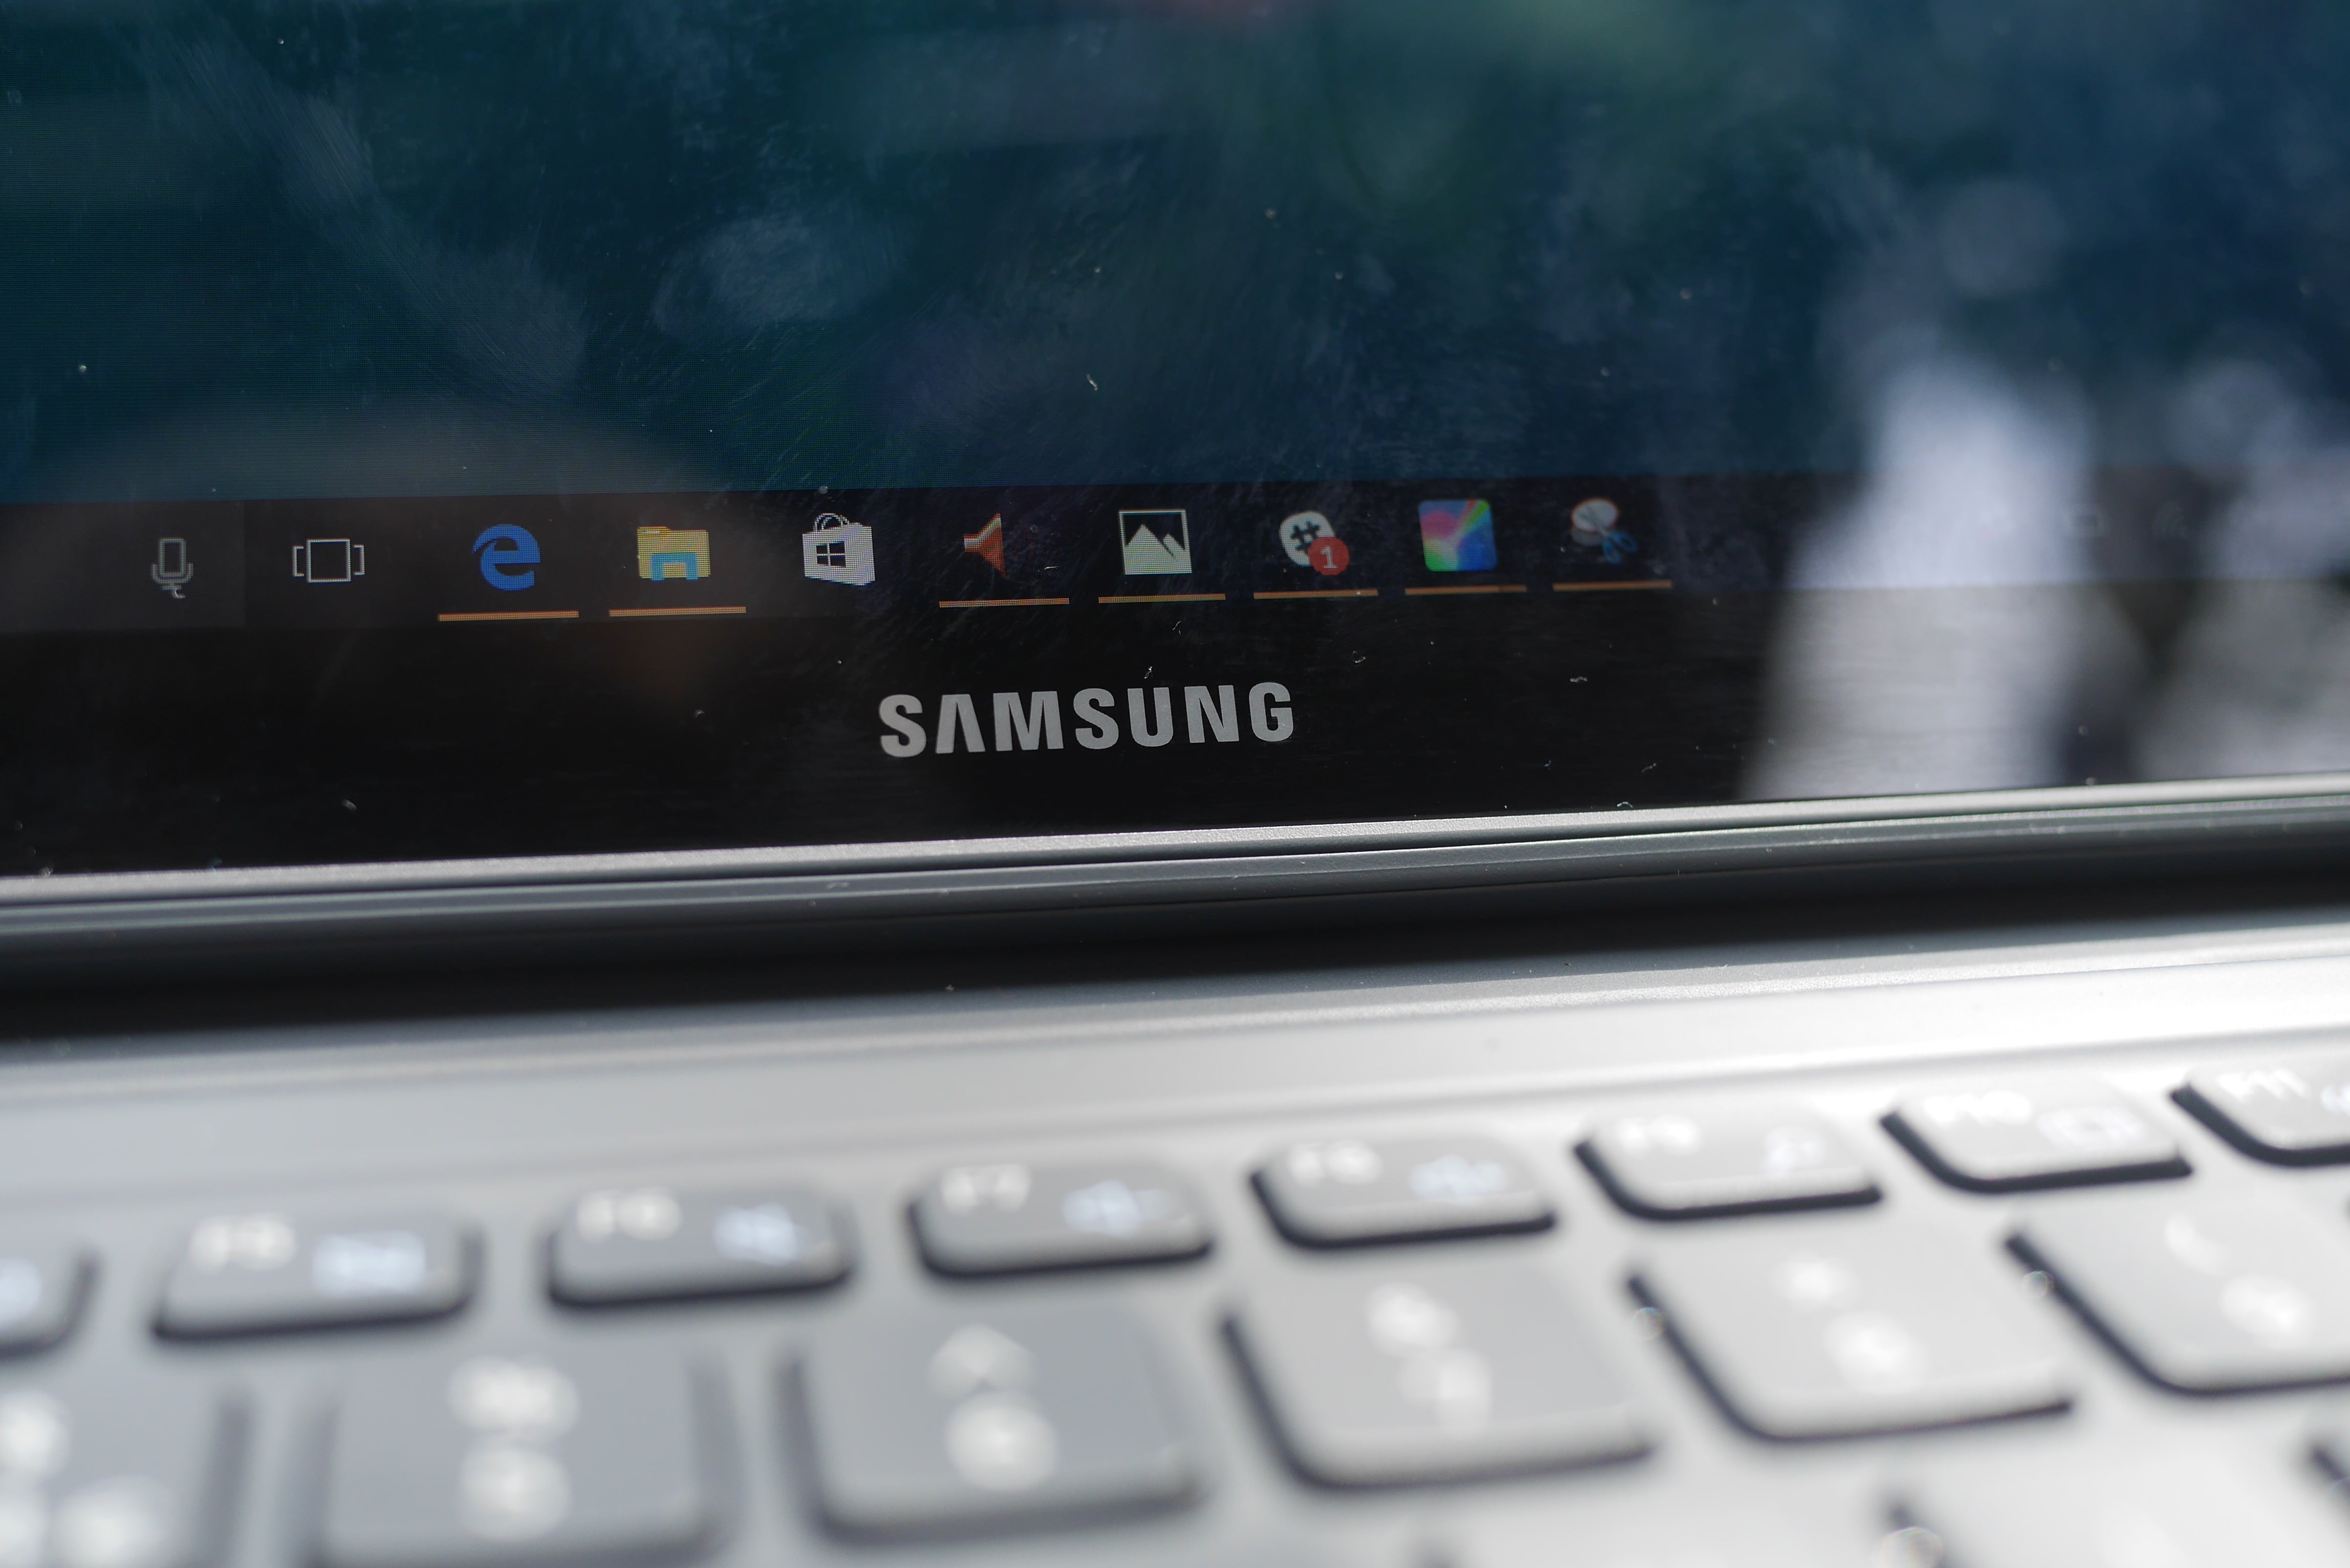 Samsung's new Chromebooks seriously undercut the competition on price